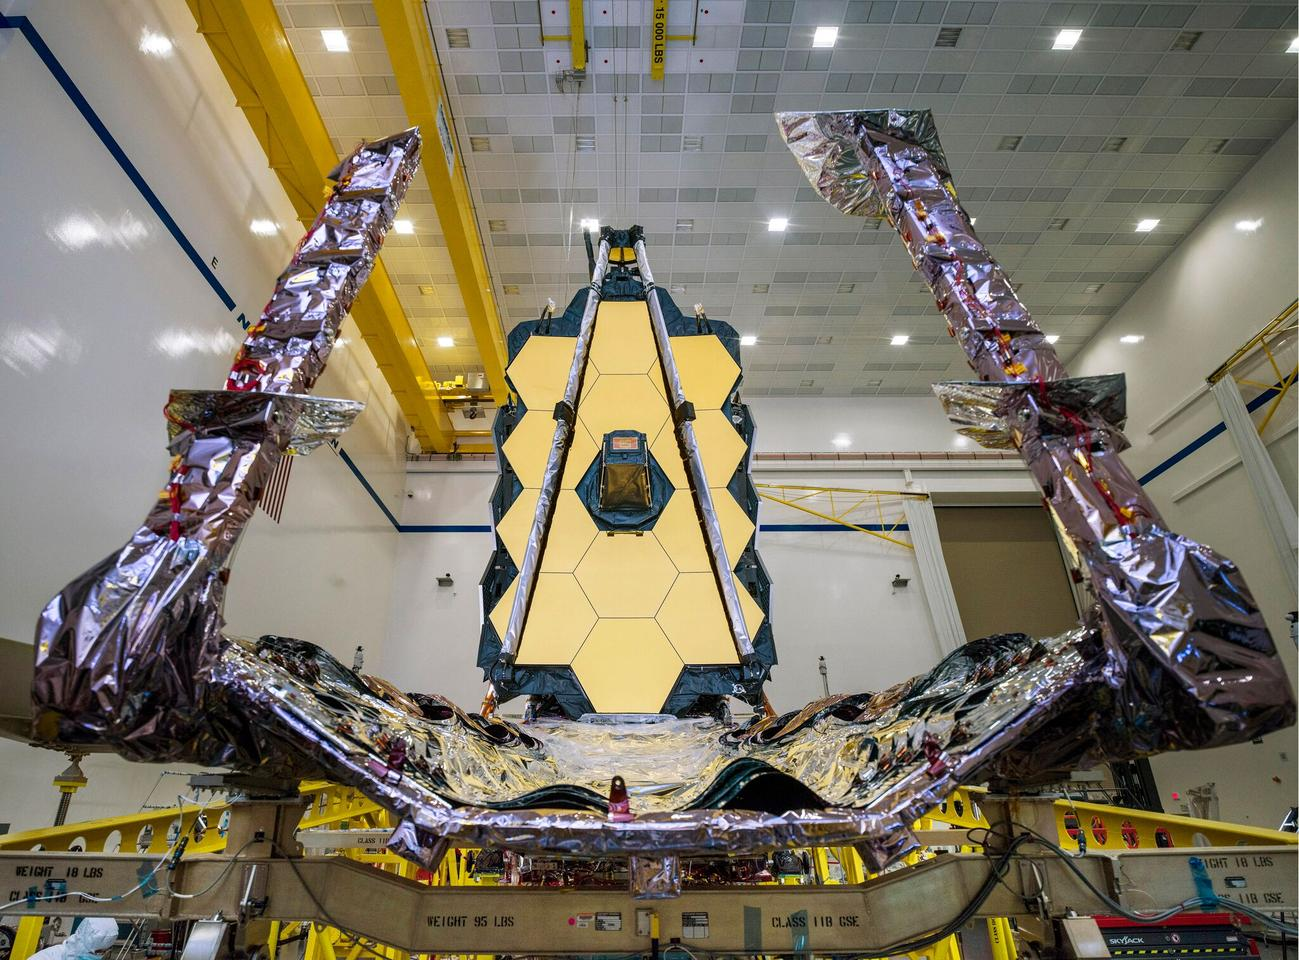 Following more than two decades of design and construction, engineers have put the final pieces in place for NASA's next generation orbiting observatory, the James Webb Space Telescope